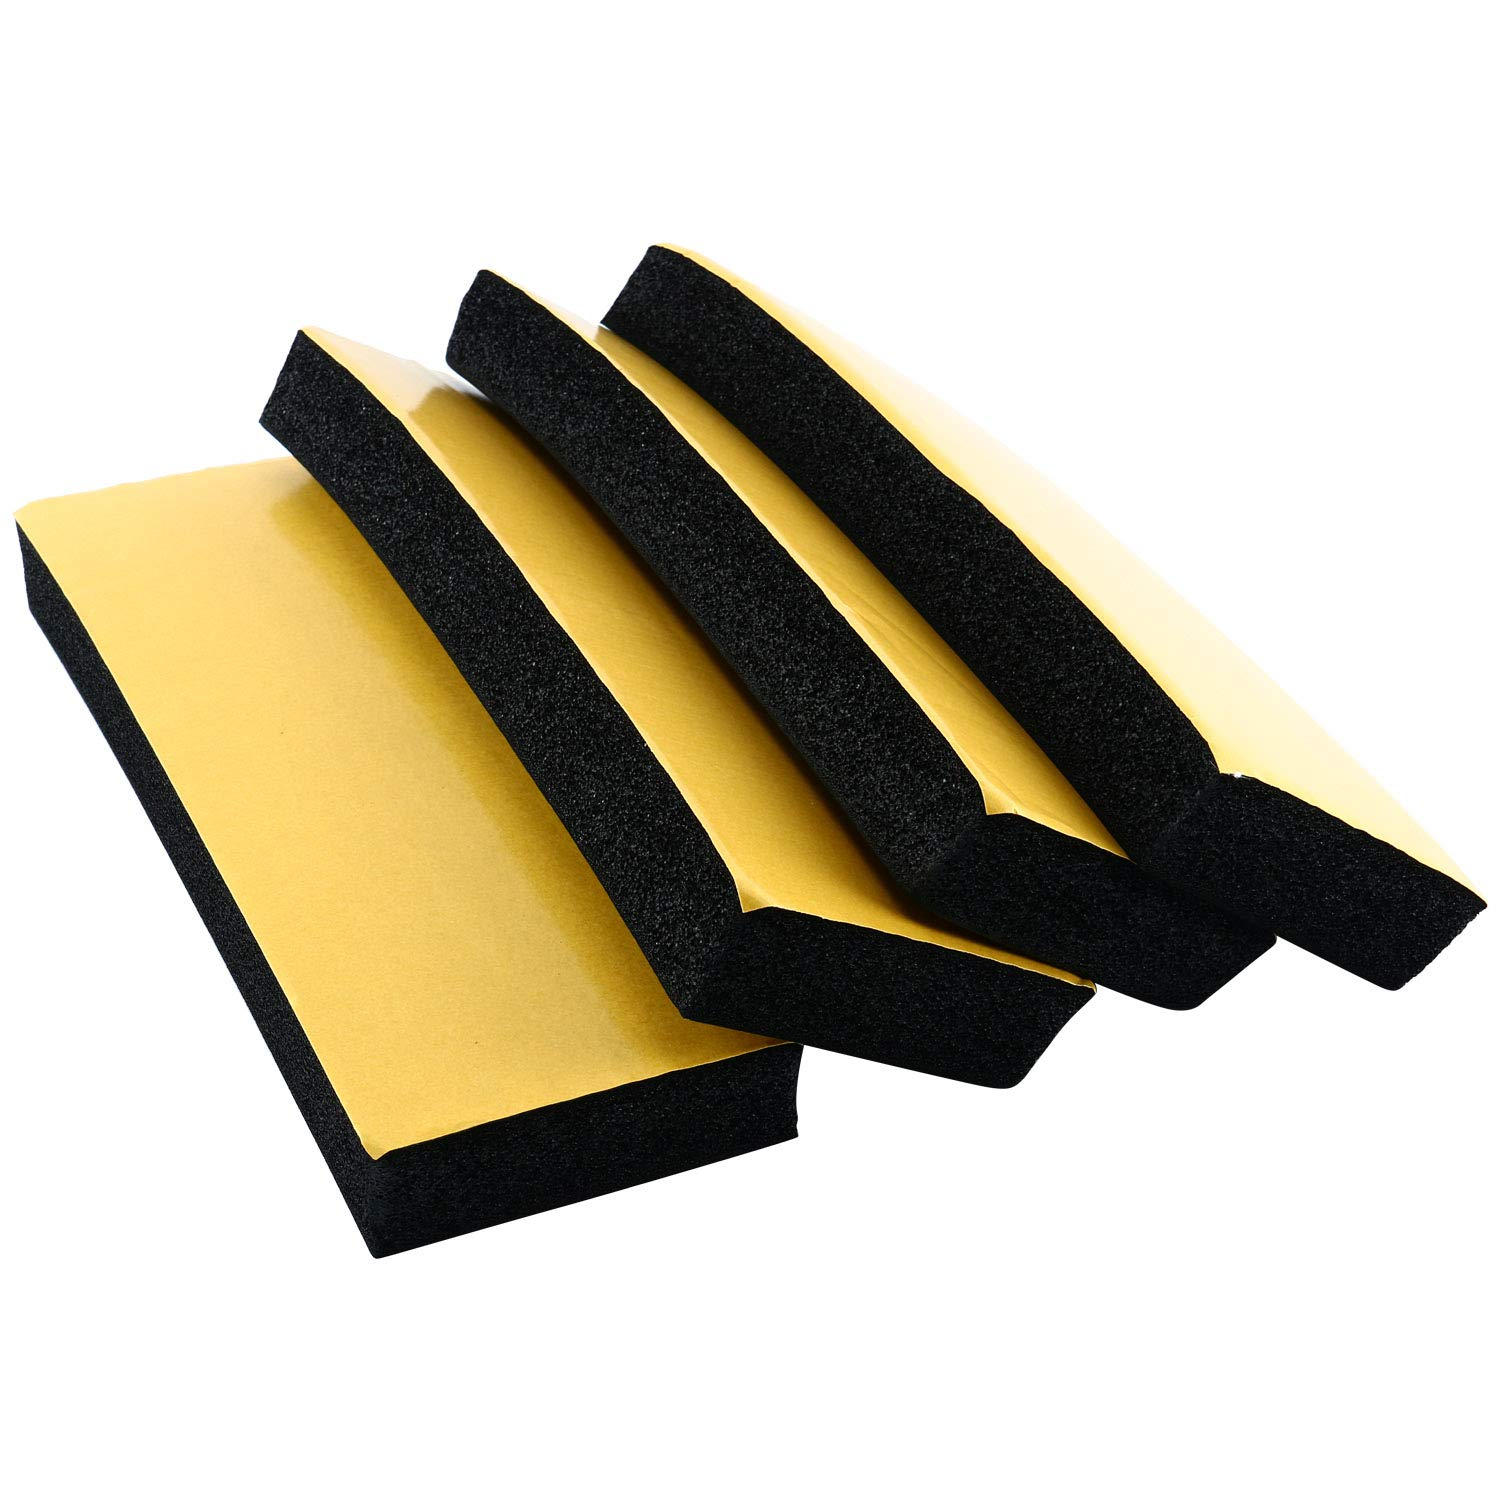 Garage Car Door Bumper Guards 4 PACK High Density Door Bumper & Edge Protector, 12' x 3.9 x 1 Inch - Prevent Damage to Door and Garage Walls 12 x 3.9 x 1 Inch - Prevent Damage to Door and Garage Walls freebirdtrading